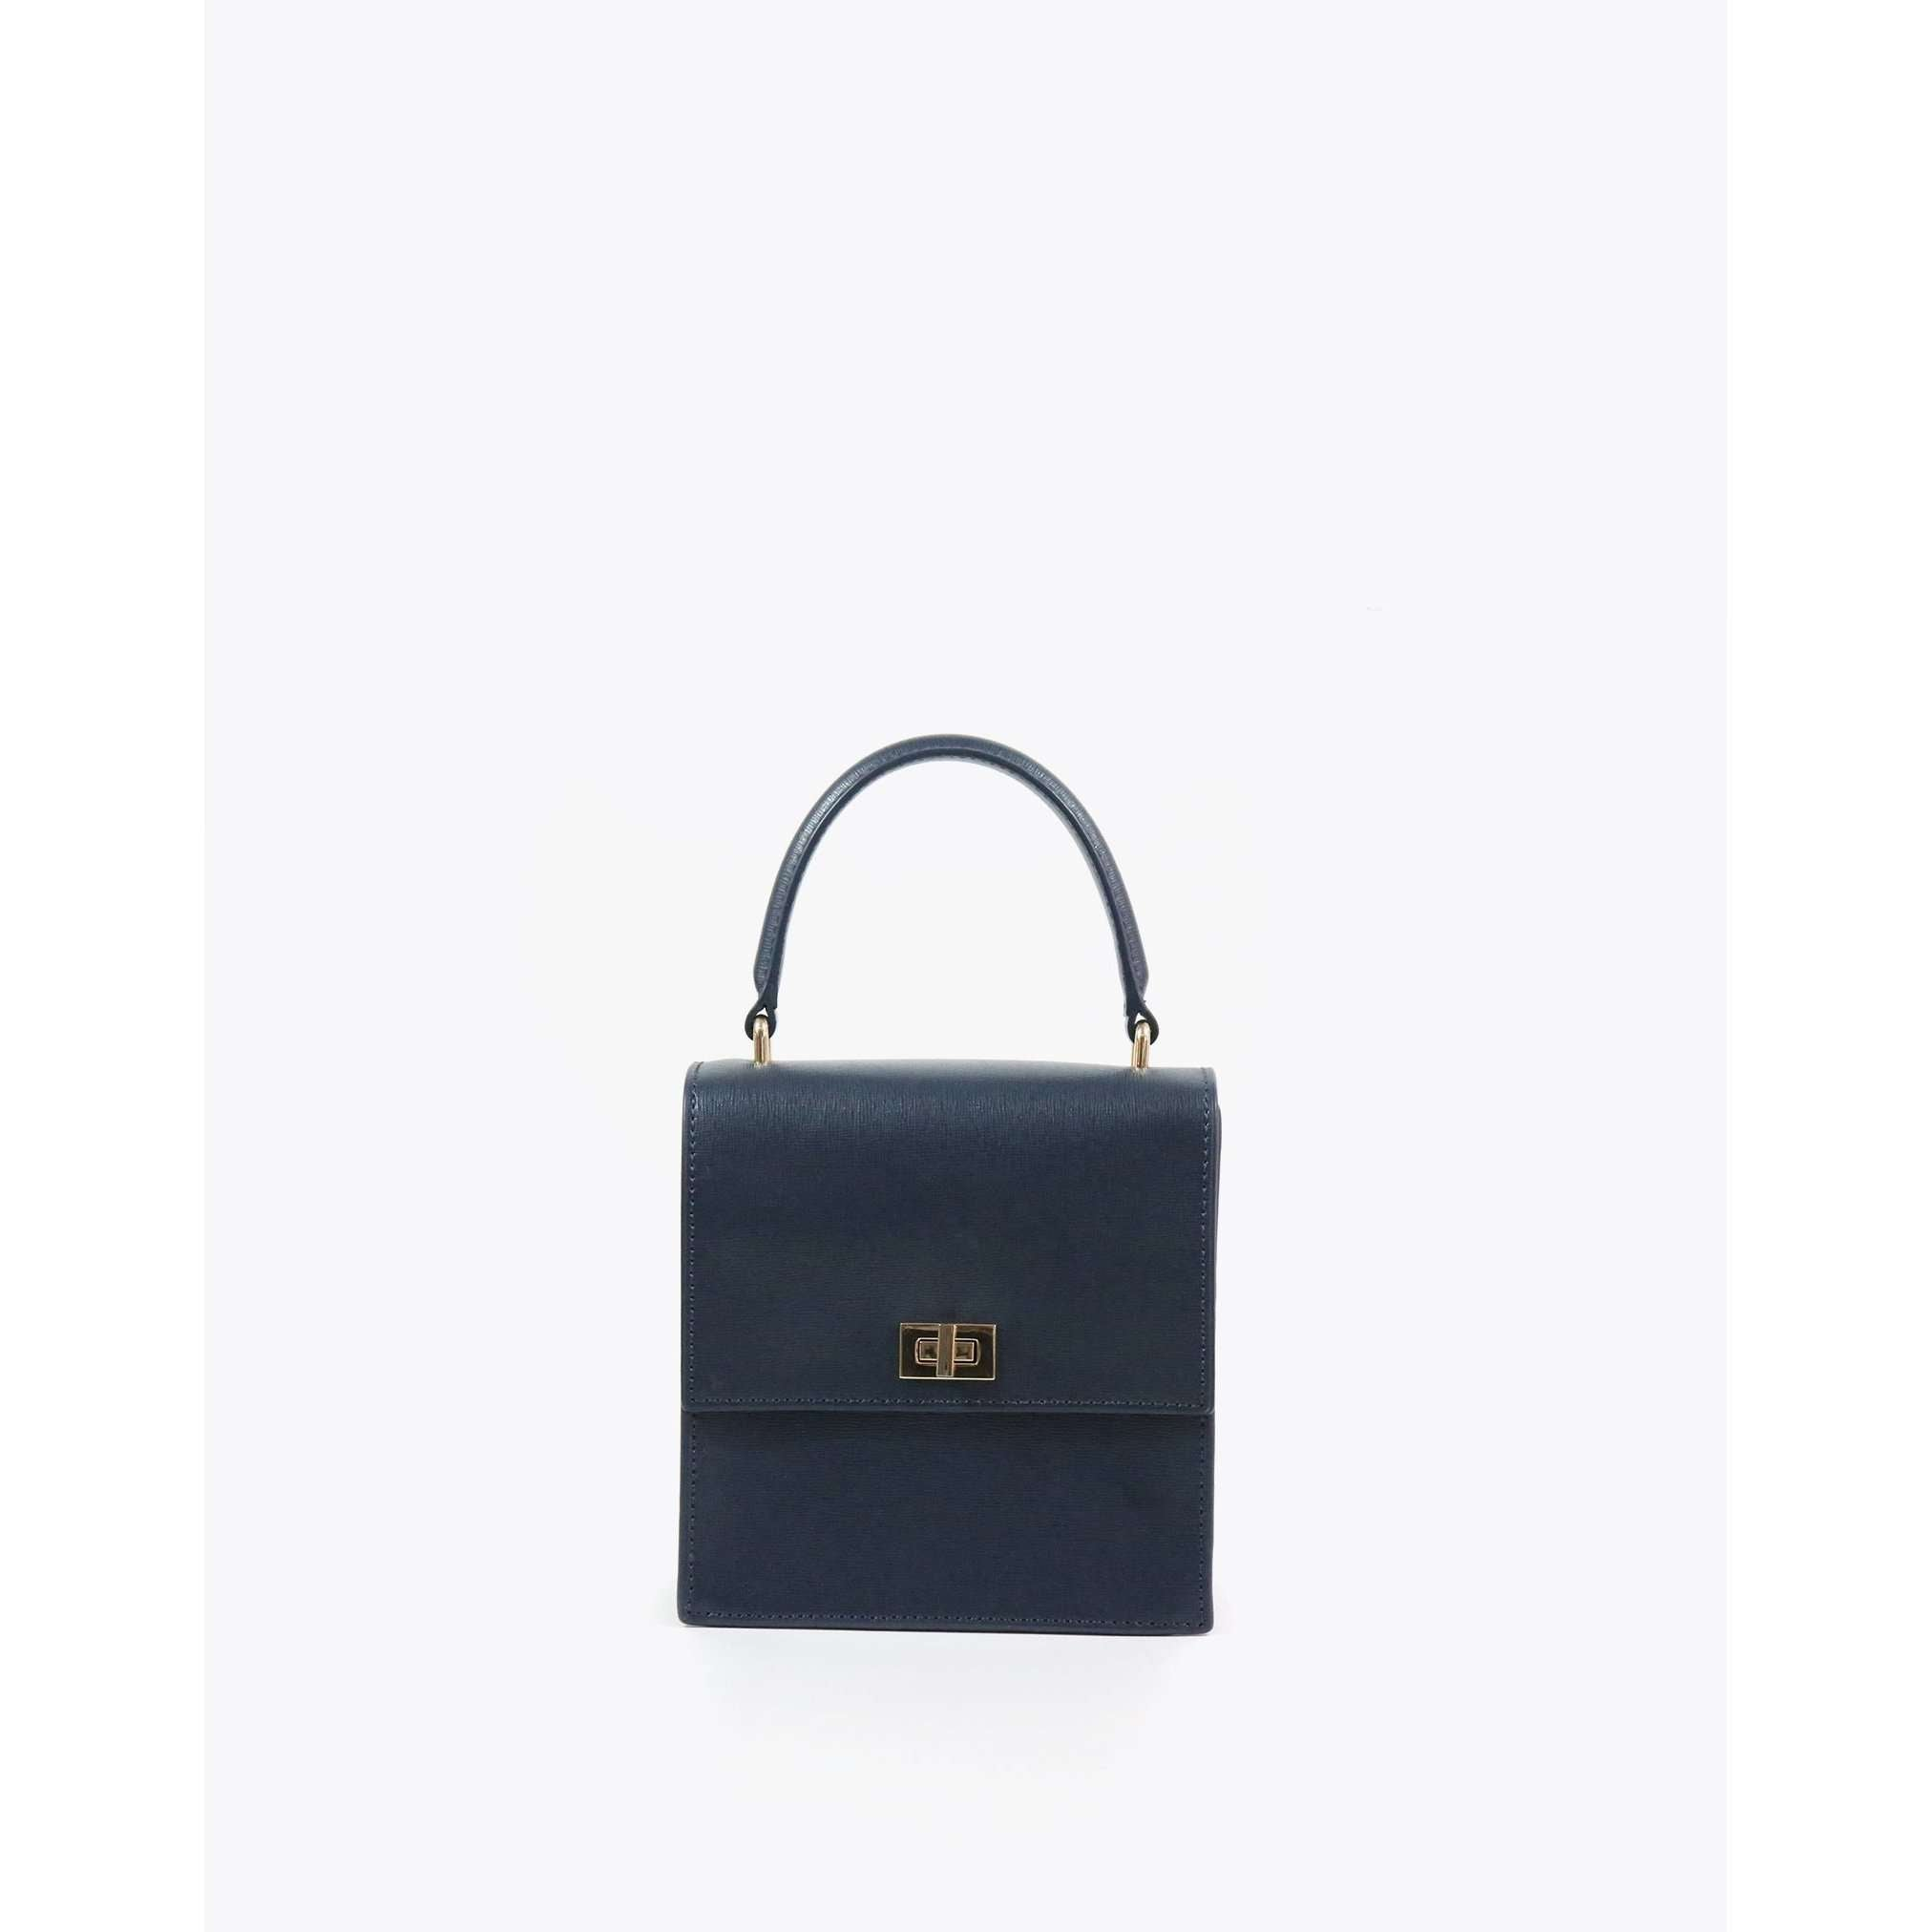 8.28 Boutique:Neely and Chloe,Neely and Chloe Lady Bag in Navy,Purse